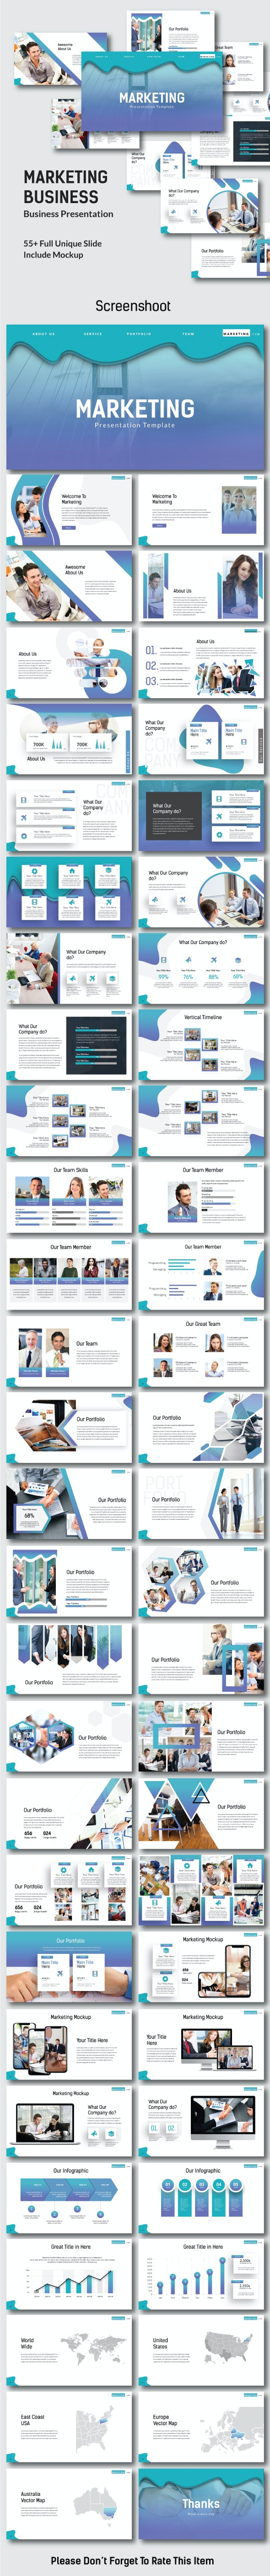 Marketing Business - Powerpoint Template - PowerPoint Templates Presentation Templates